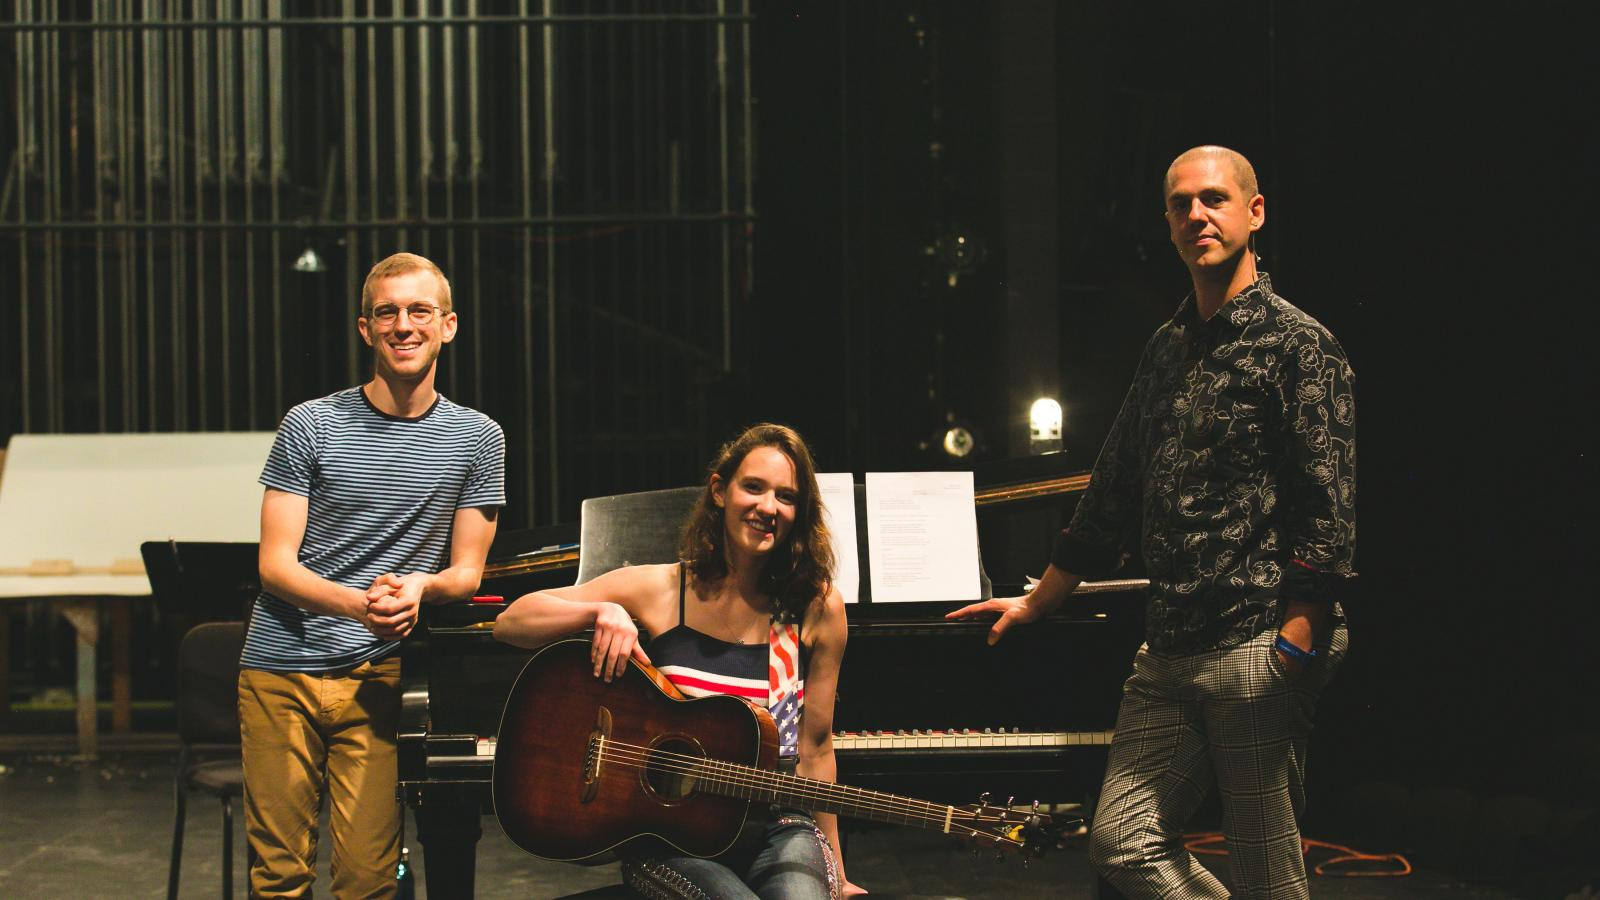 A young woman sits on a piano bench holding a guitar while two men stand casually leaning on the piano